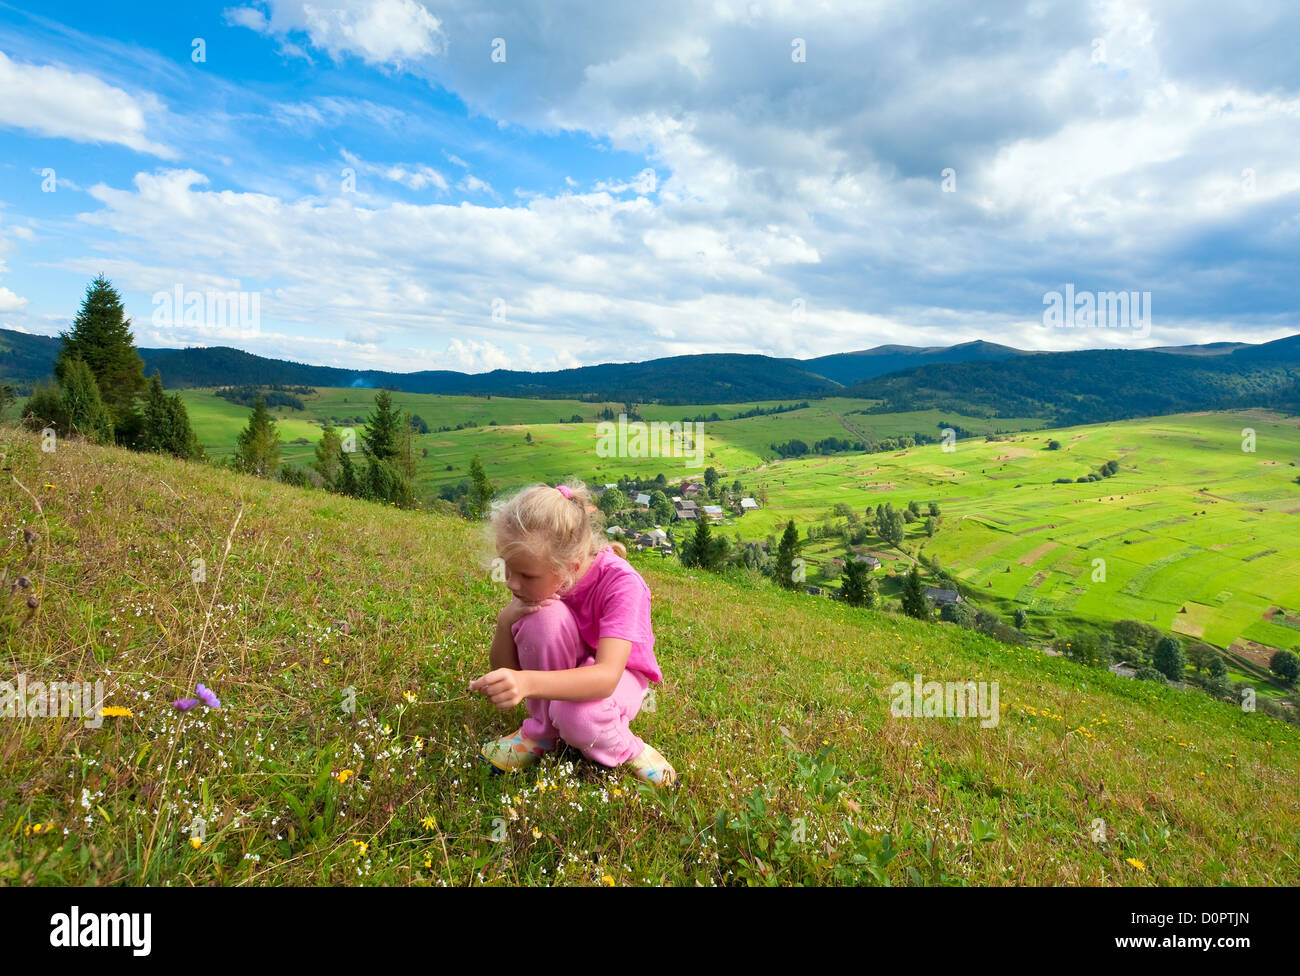 Girl in a mountain walk - Stock Image